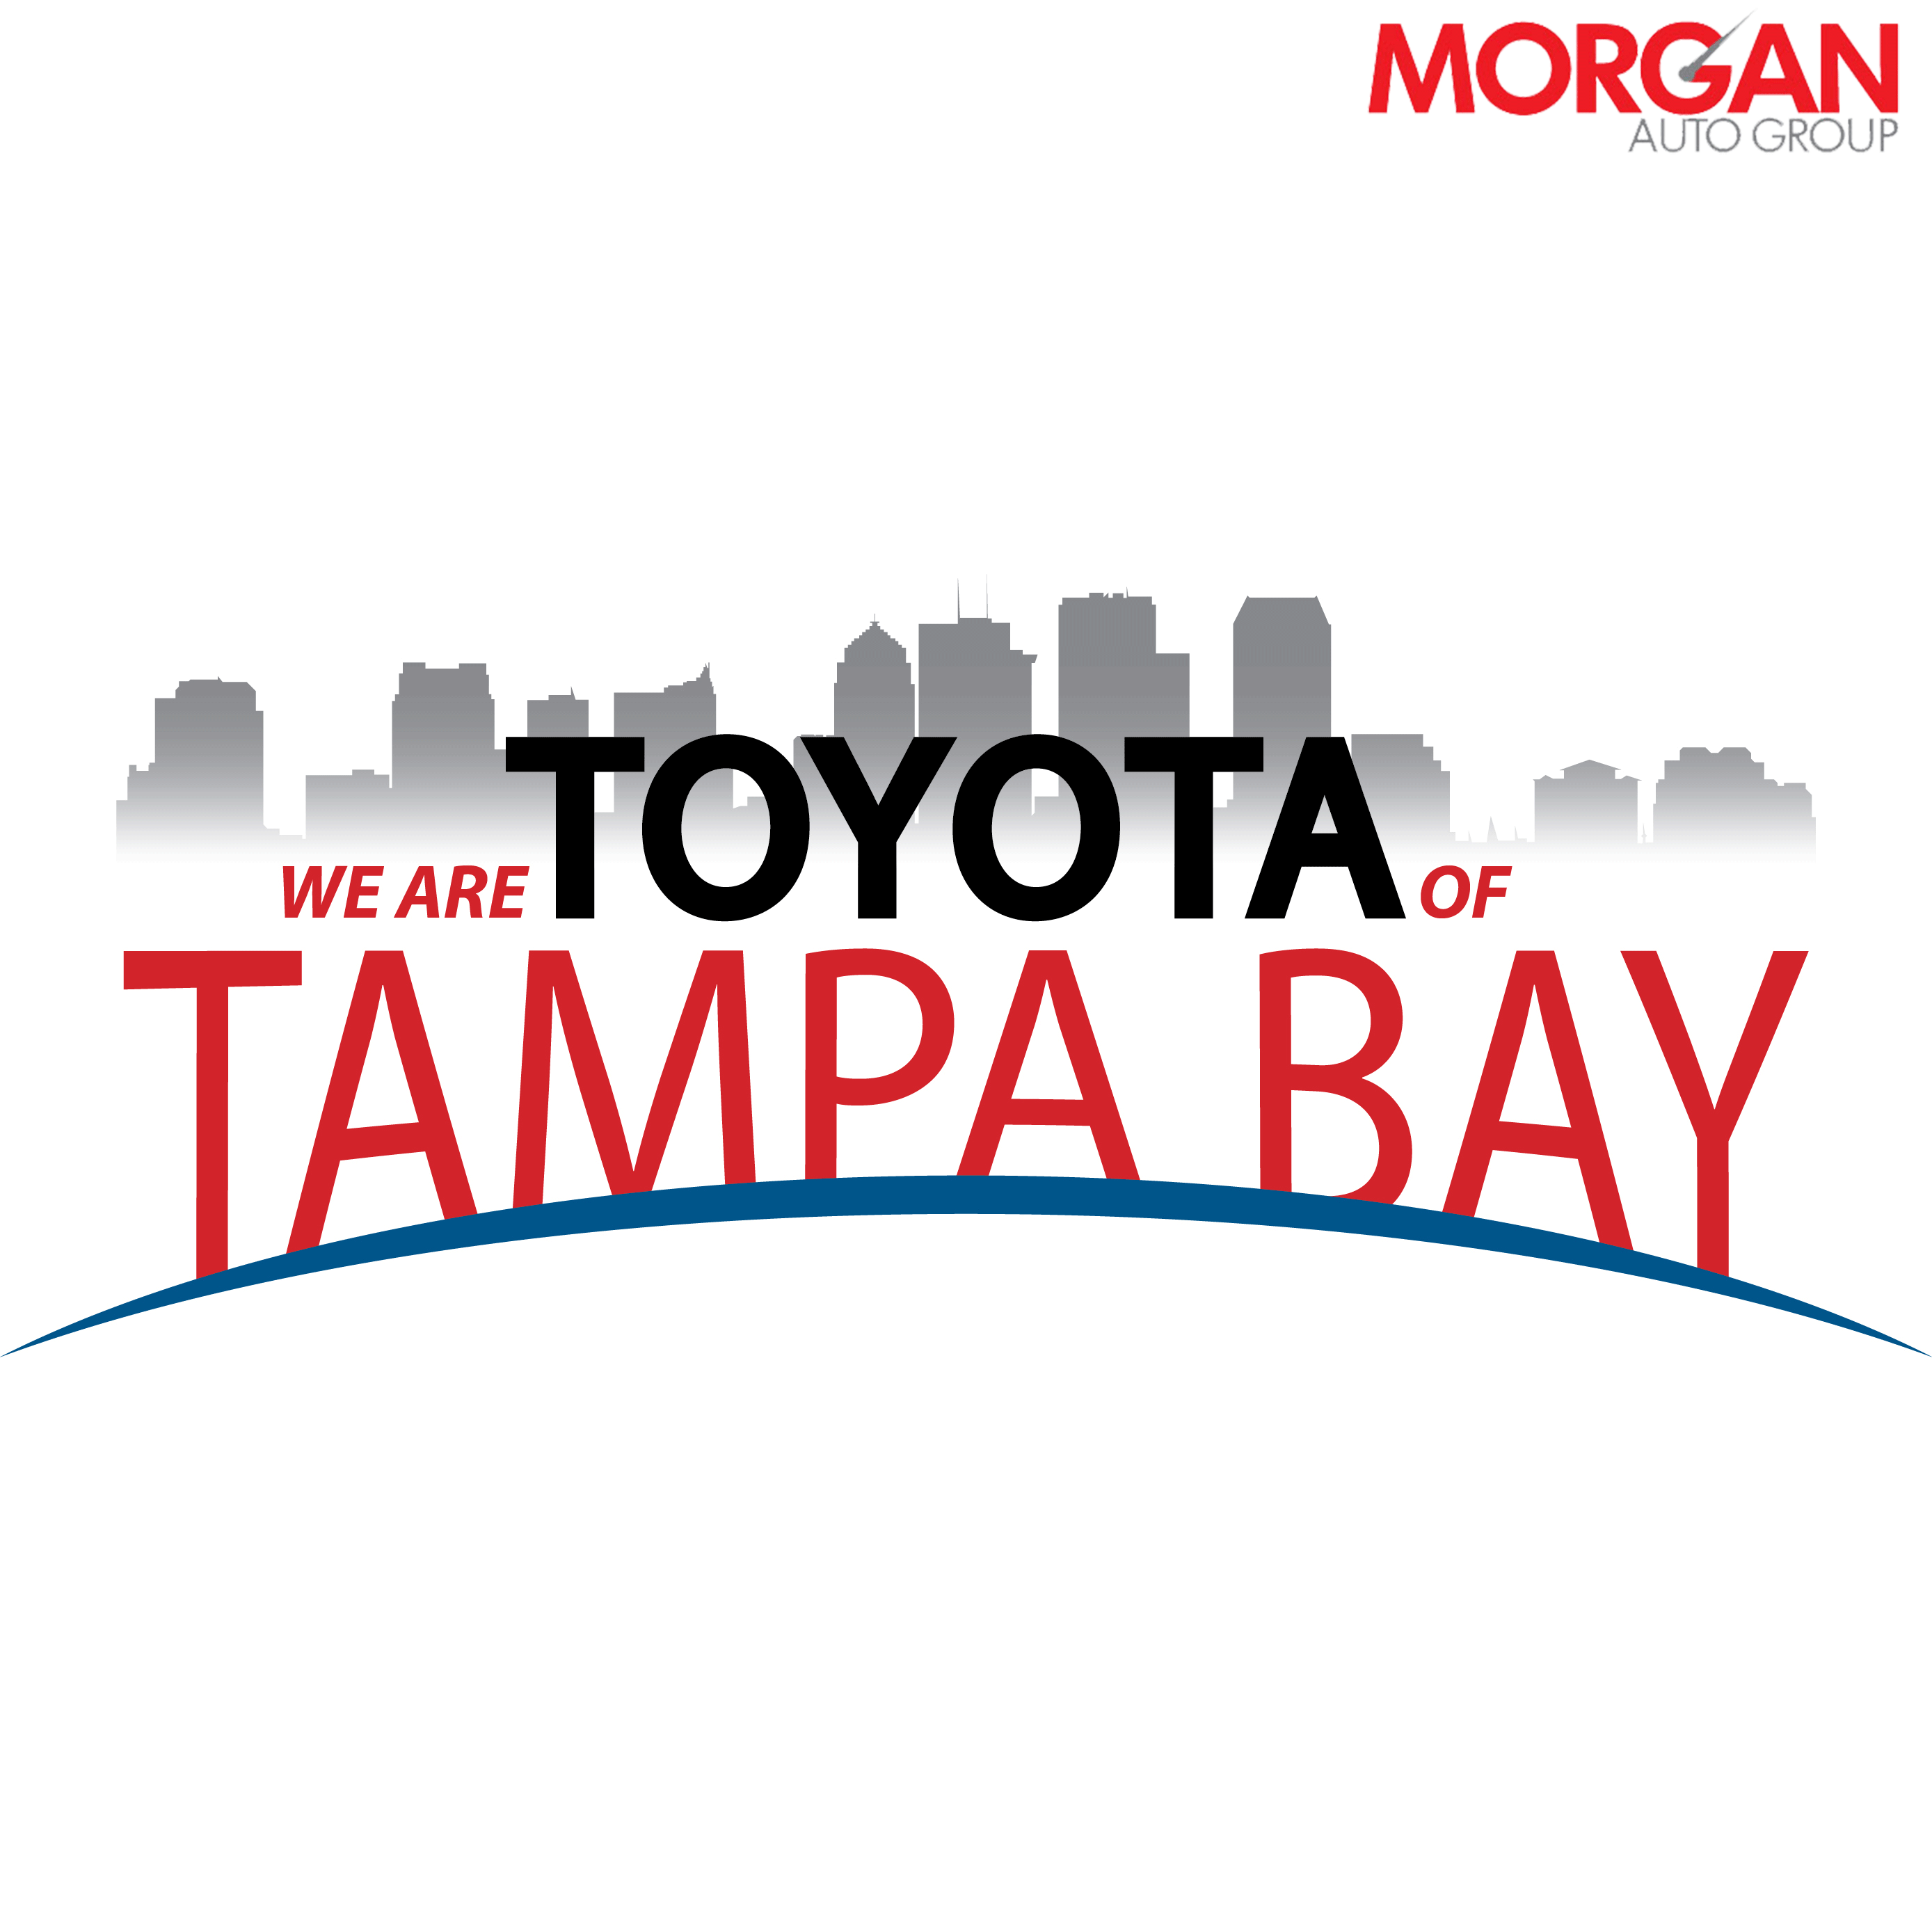 Toyota of Tampa Bay Coupons near me in Tampa | 8coupons